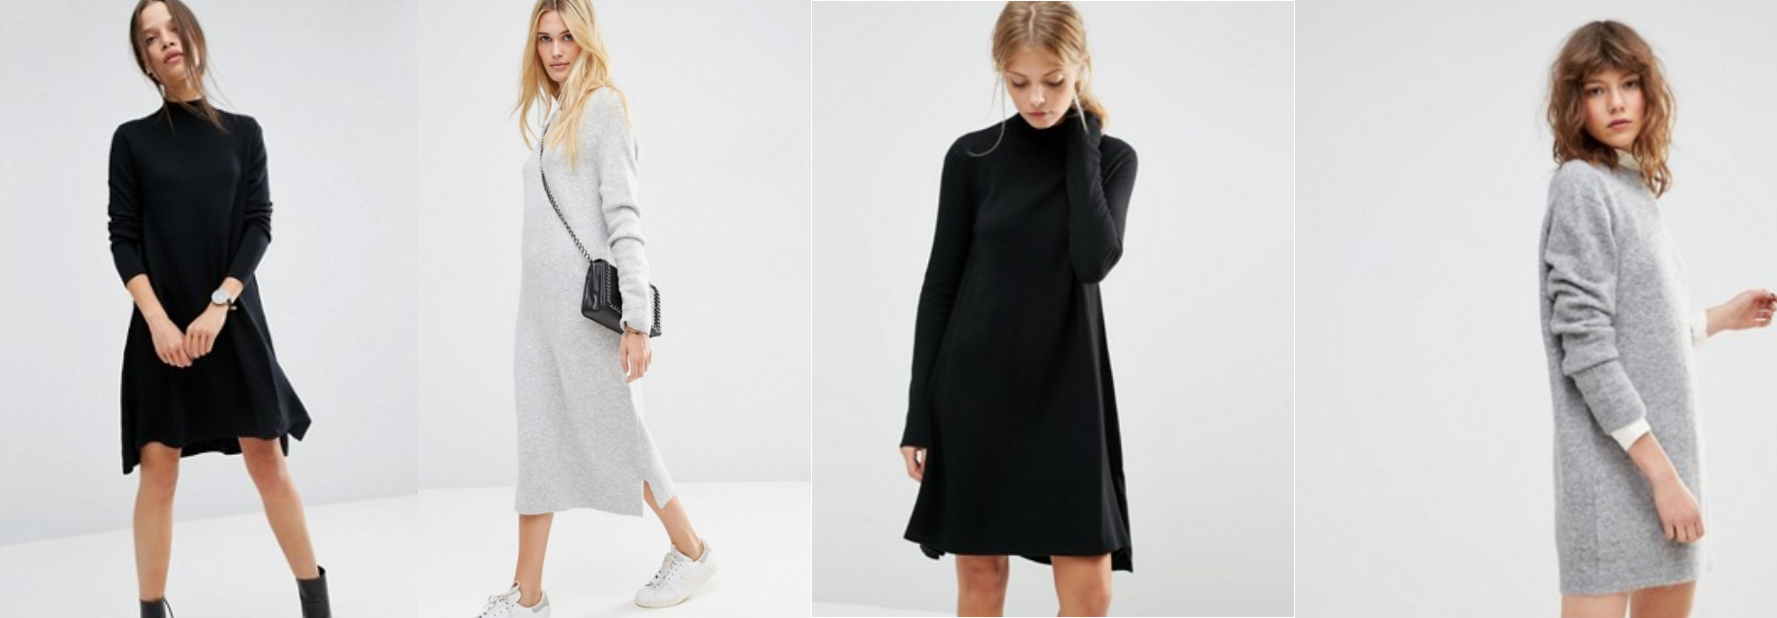 knit-dresses-for-fall-outfits